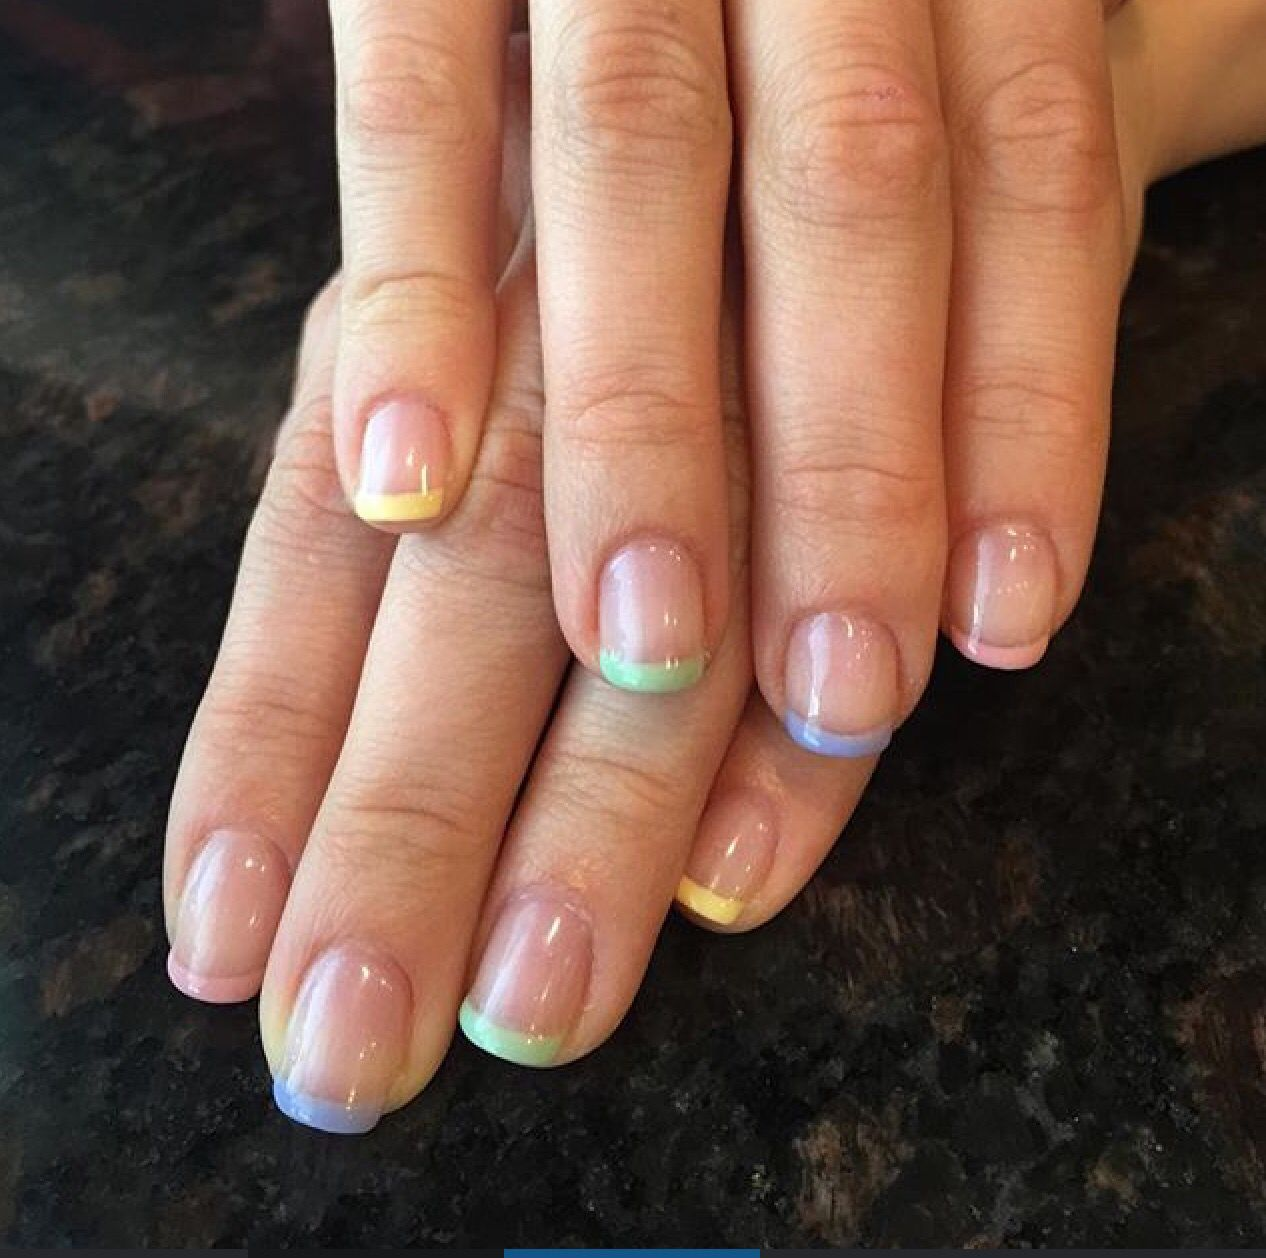 Rainbow french tip nails manicure | Nails | Pinterest | Nail ...